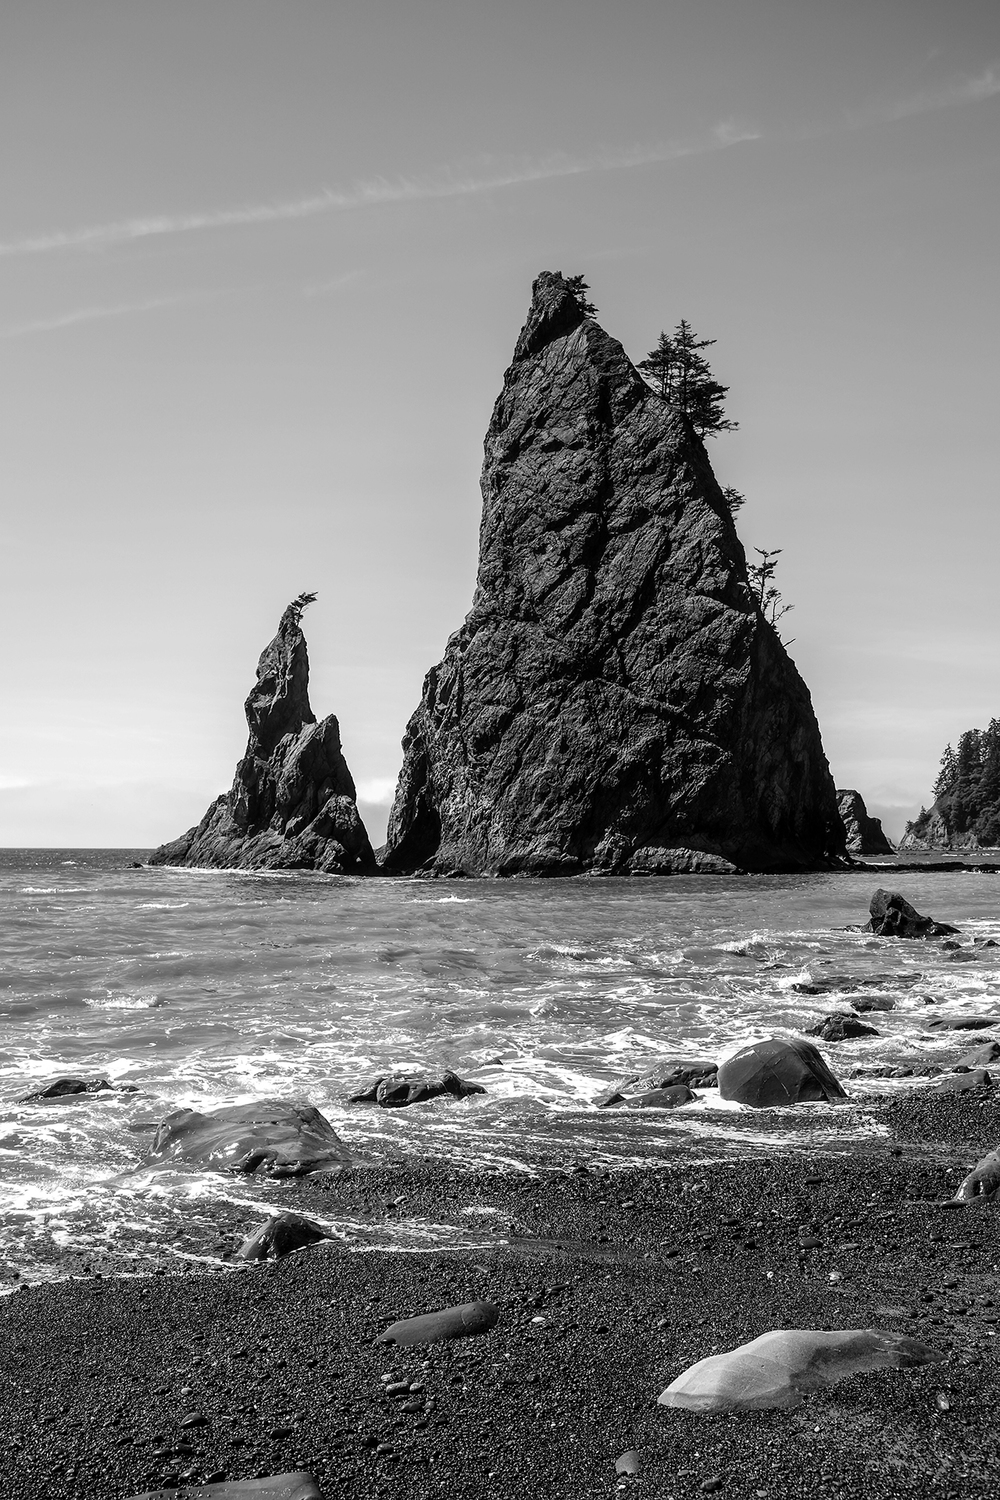 Seat Stacks on Rialto Beach, just before Hole-in-the-Wall.    Prints available upon request.